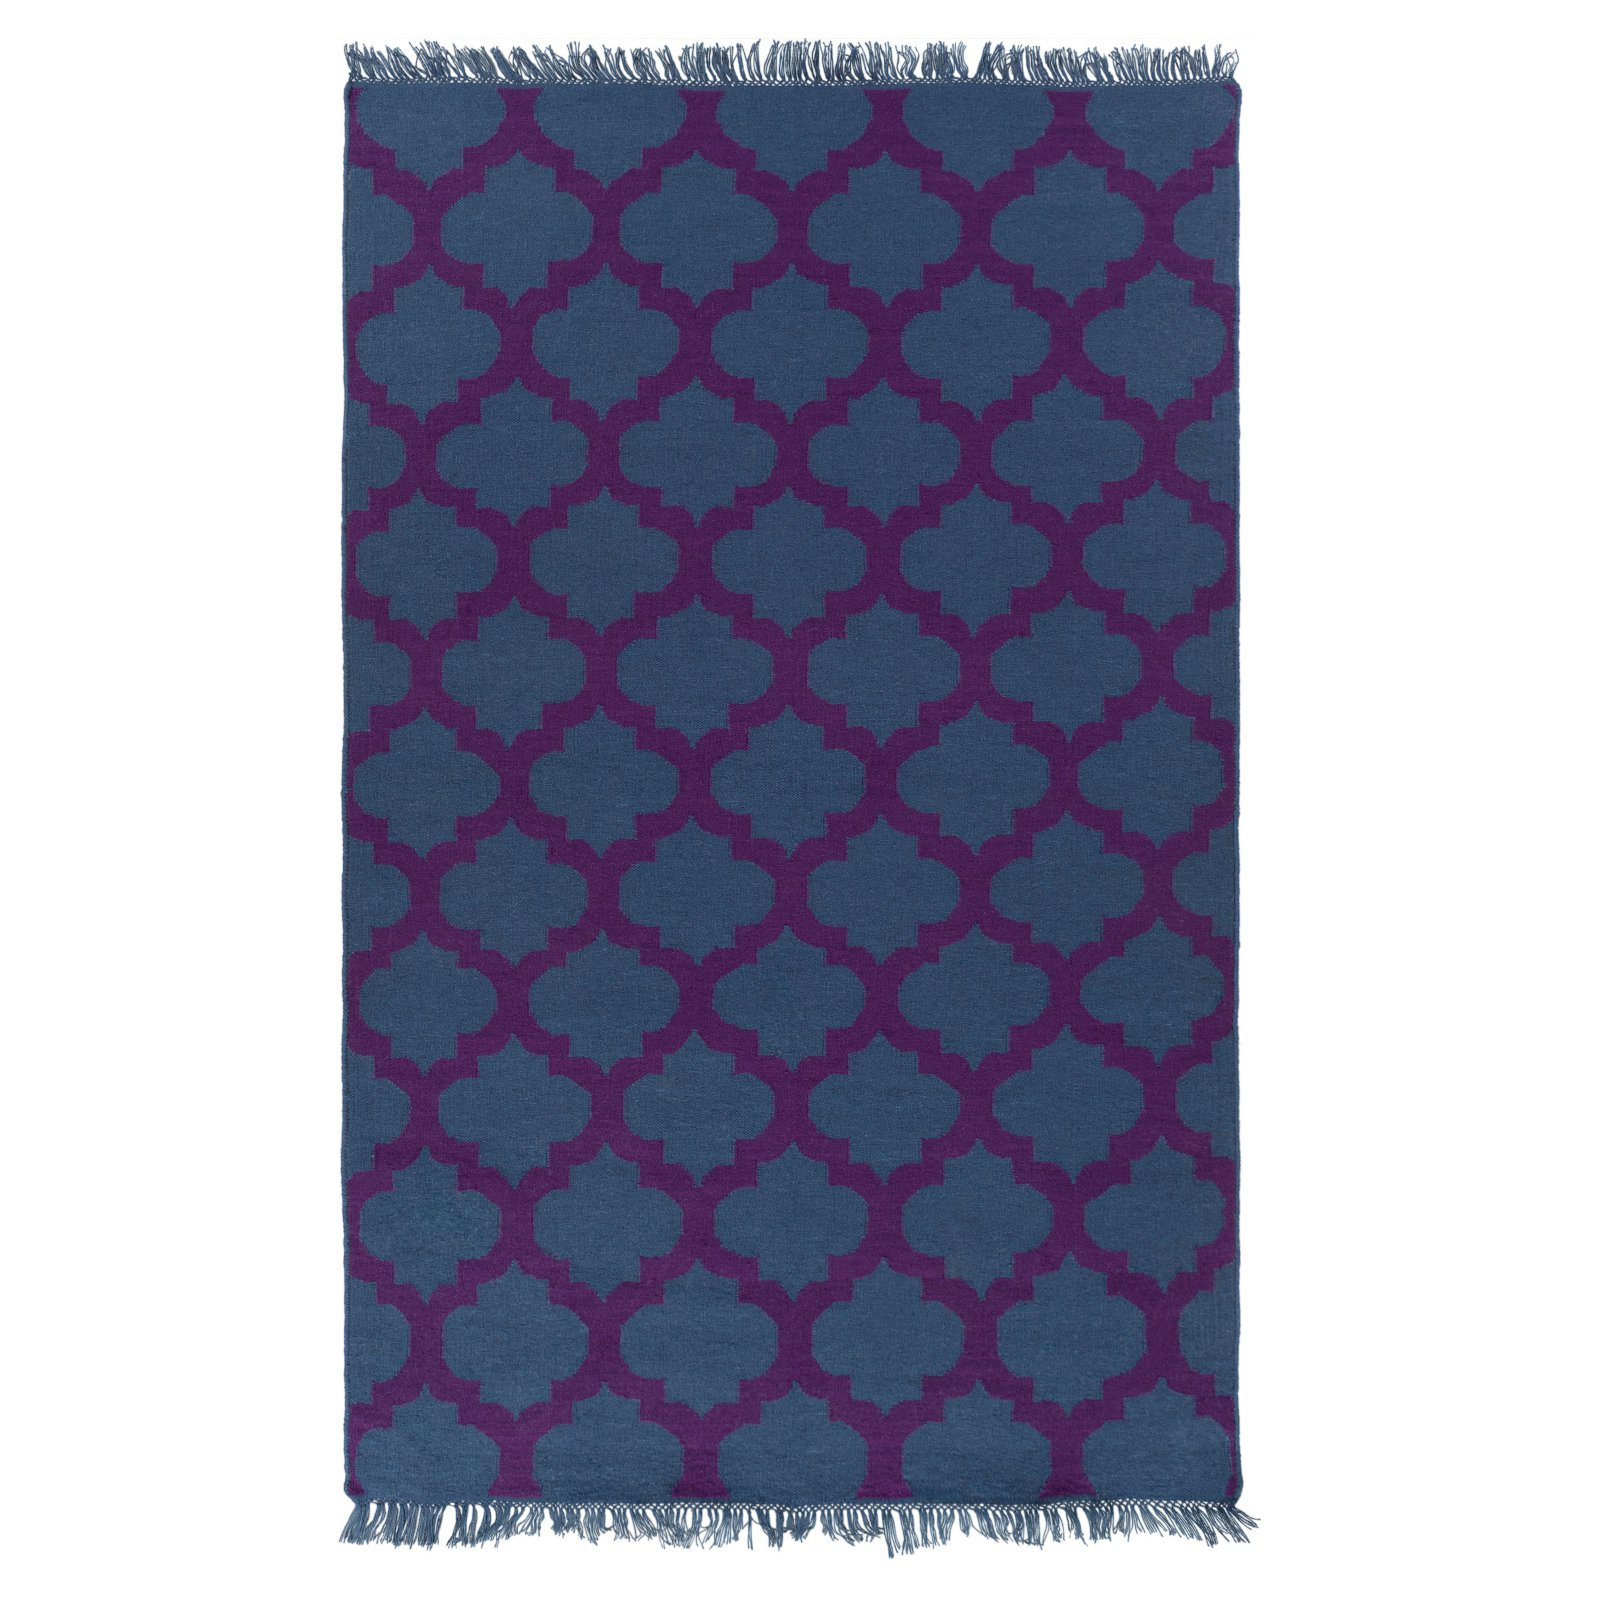 Surya Lagoon LGO2015 Indoor/Outdoor Area Rug